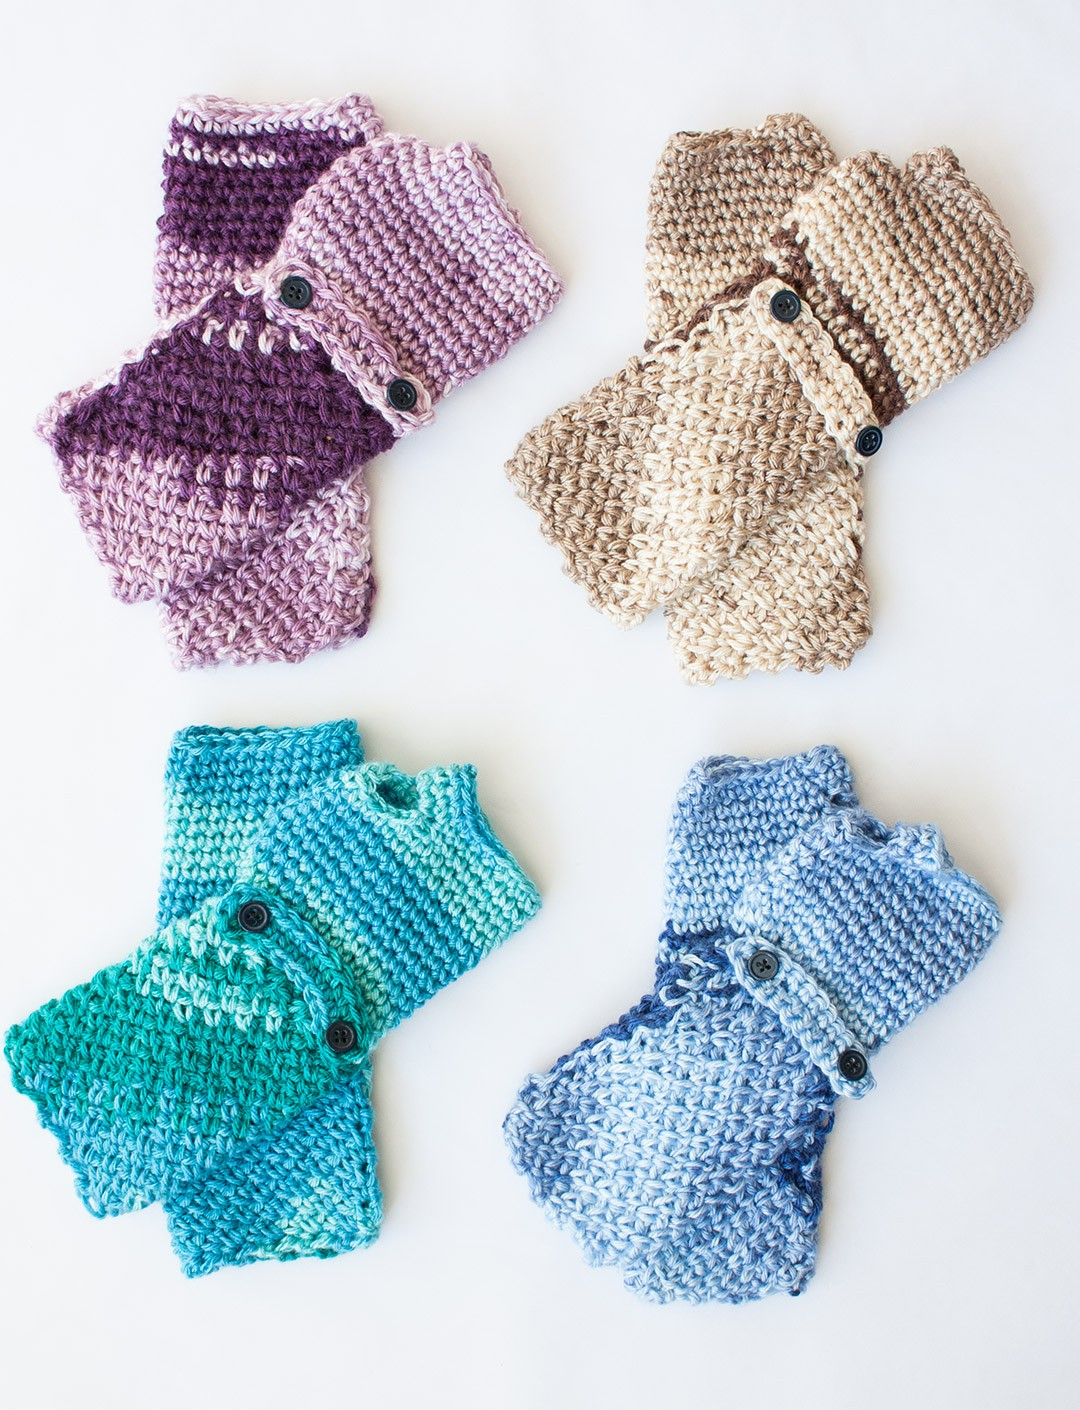 Fingerless gloves canada - Cozy Posy Fingerless Gloves